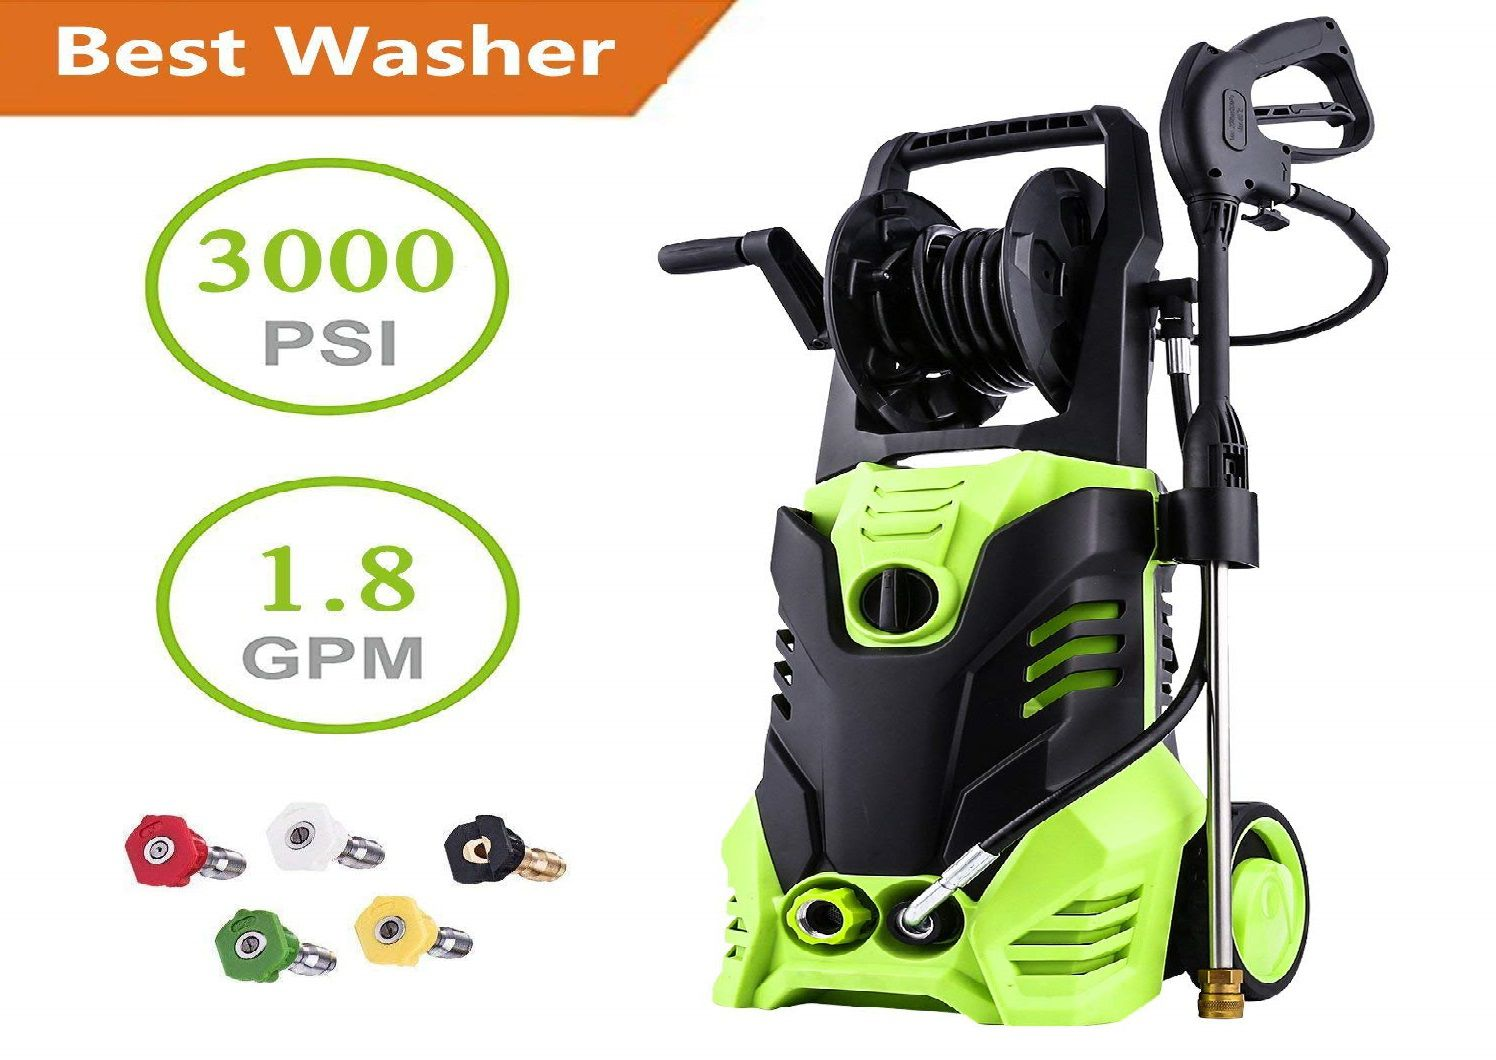 Hurbo Electric Pressure Washer Review